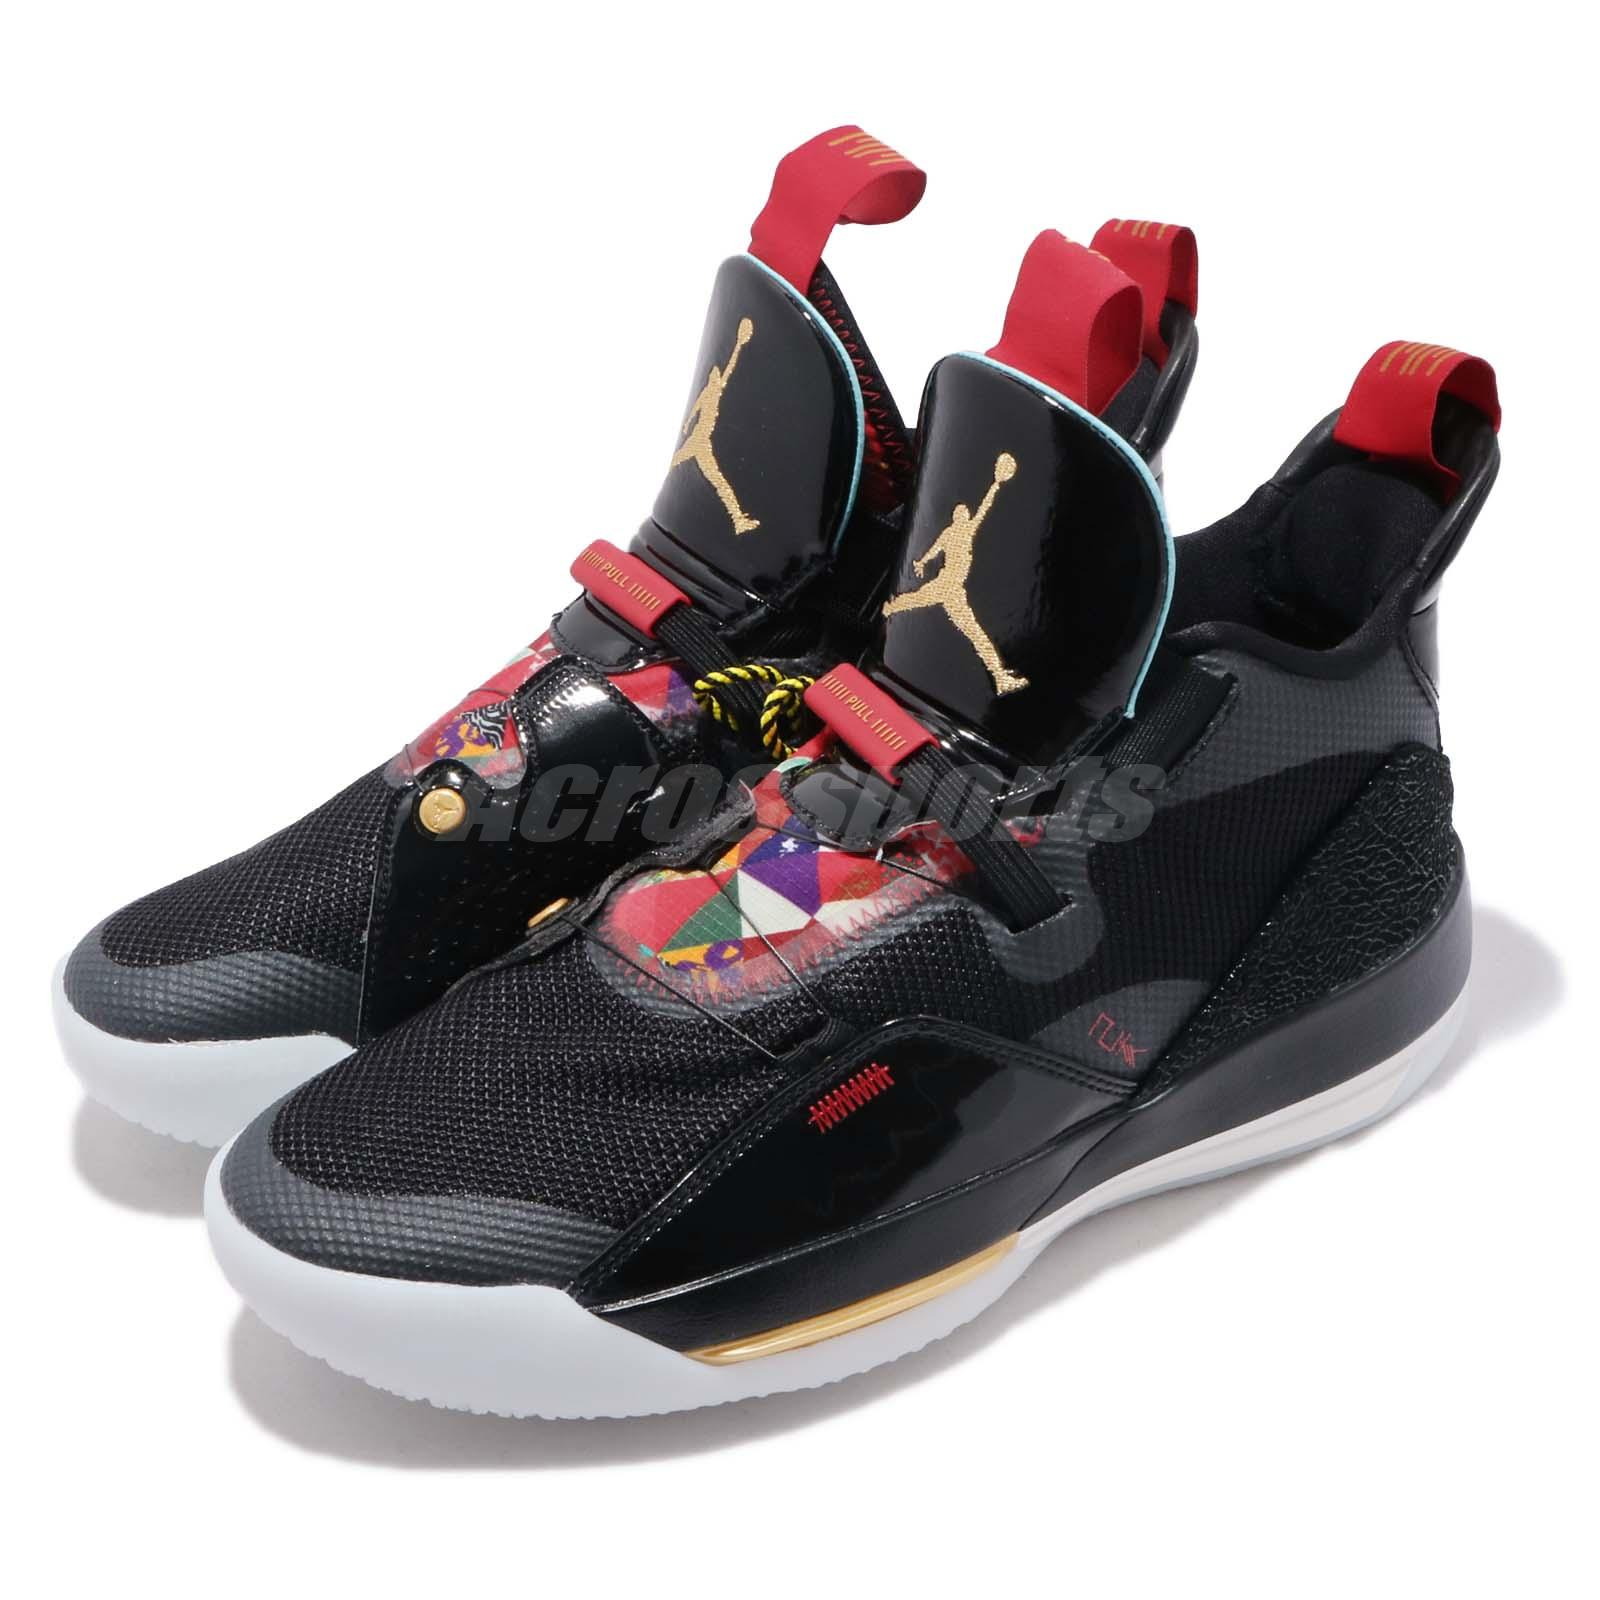 Details about Nike Air Jordan XXXIII PF 33 CNY Chinese New Year Black Multi Color BV5072 007